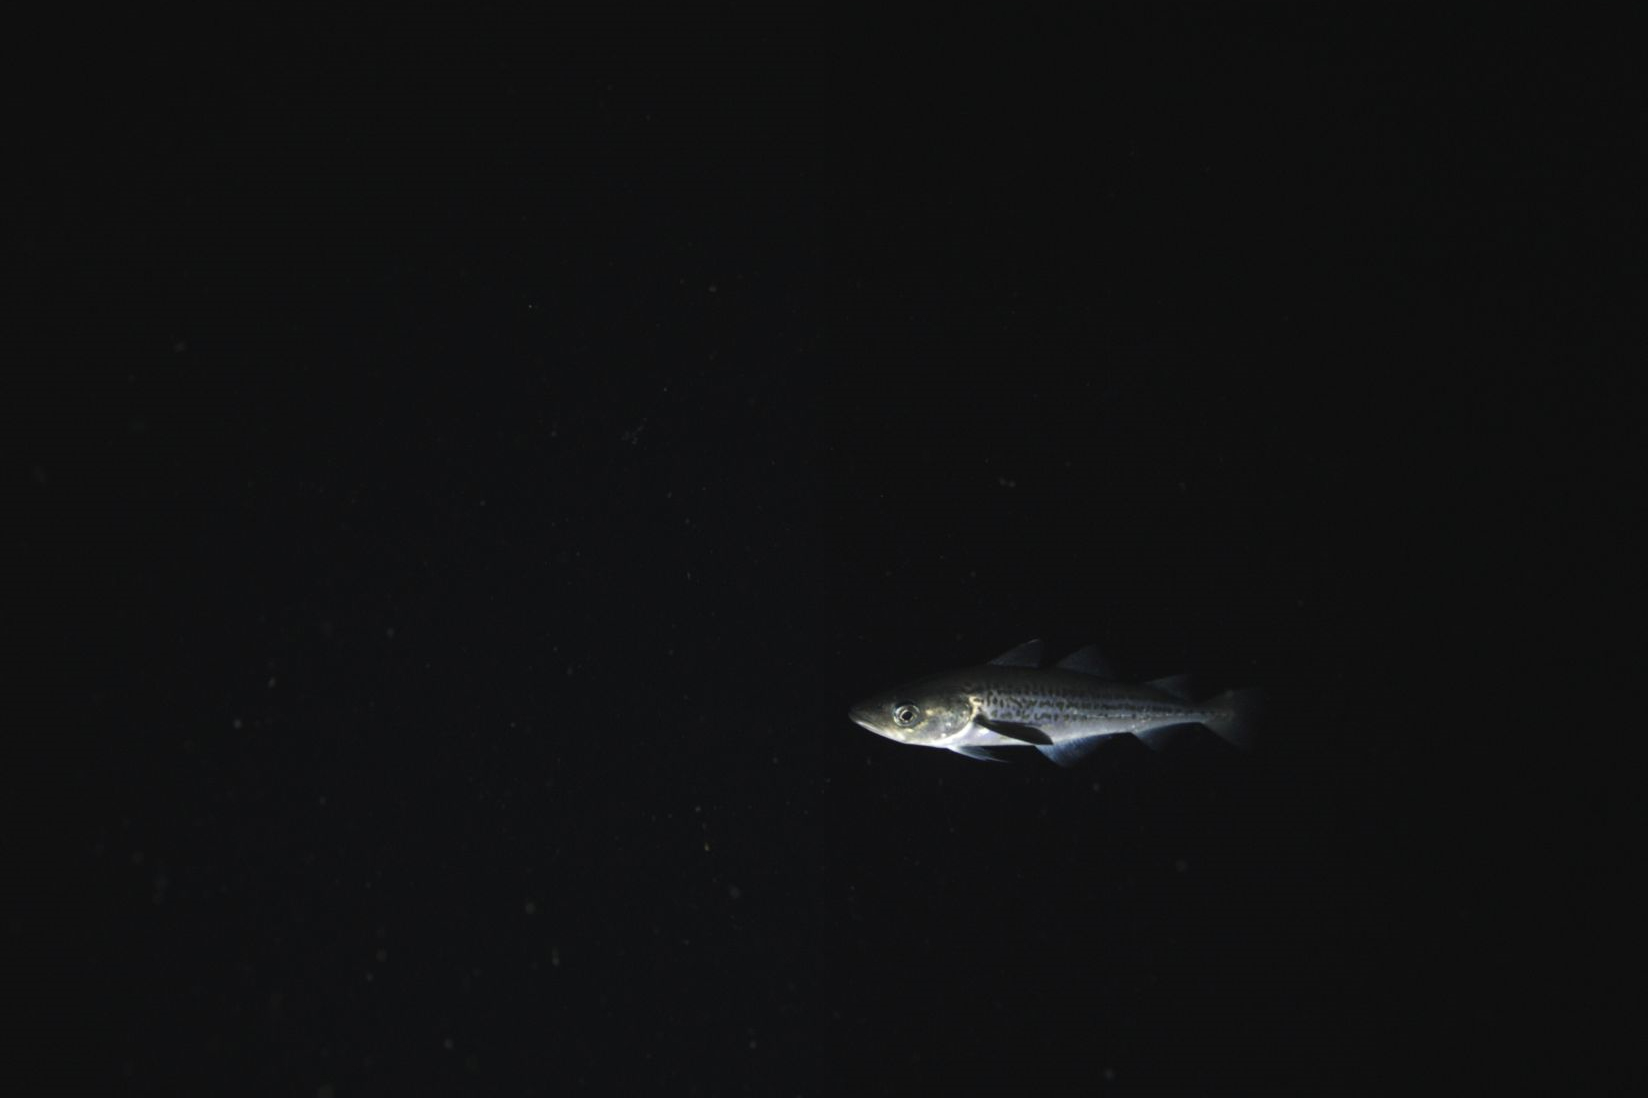 Underwater photo of a single Alaska pollock in dark water.